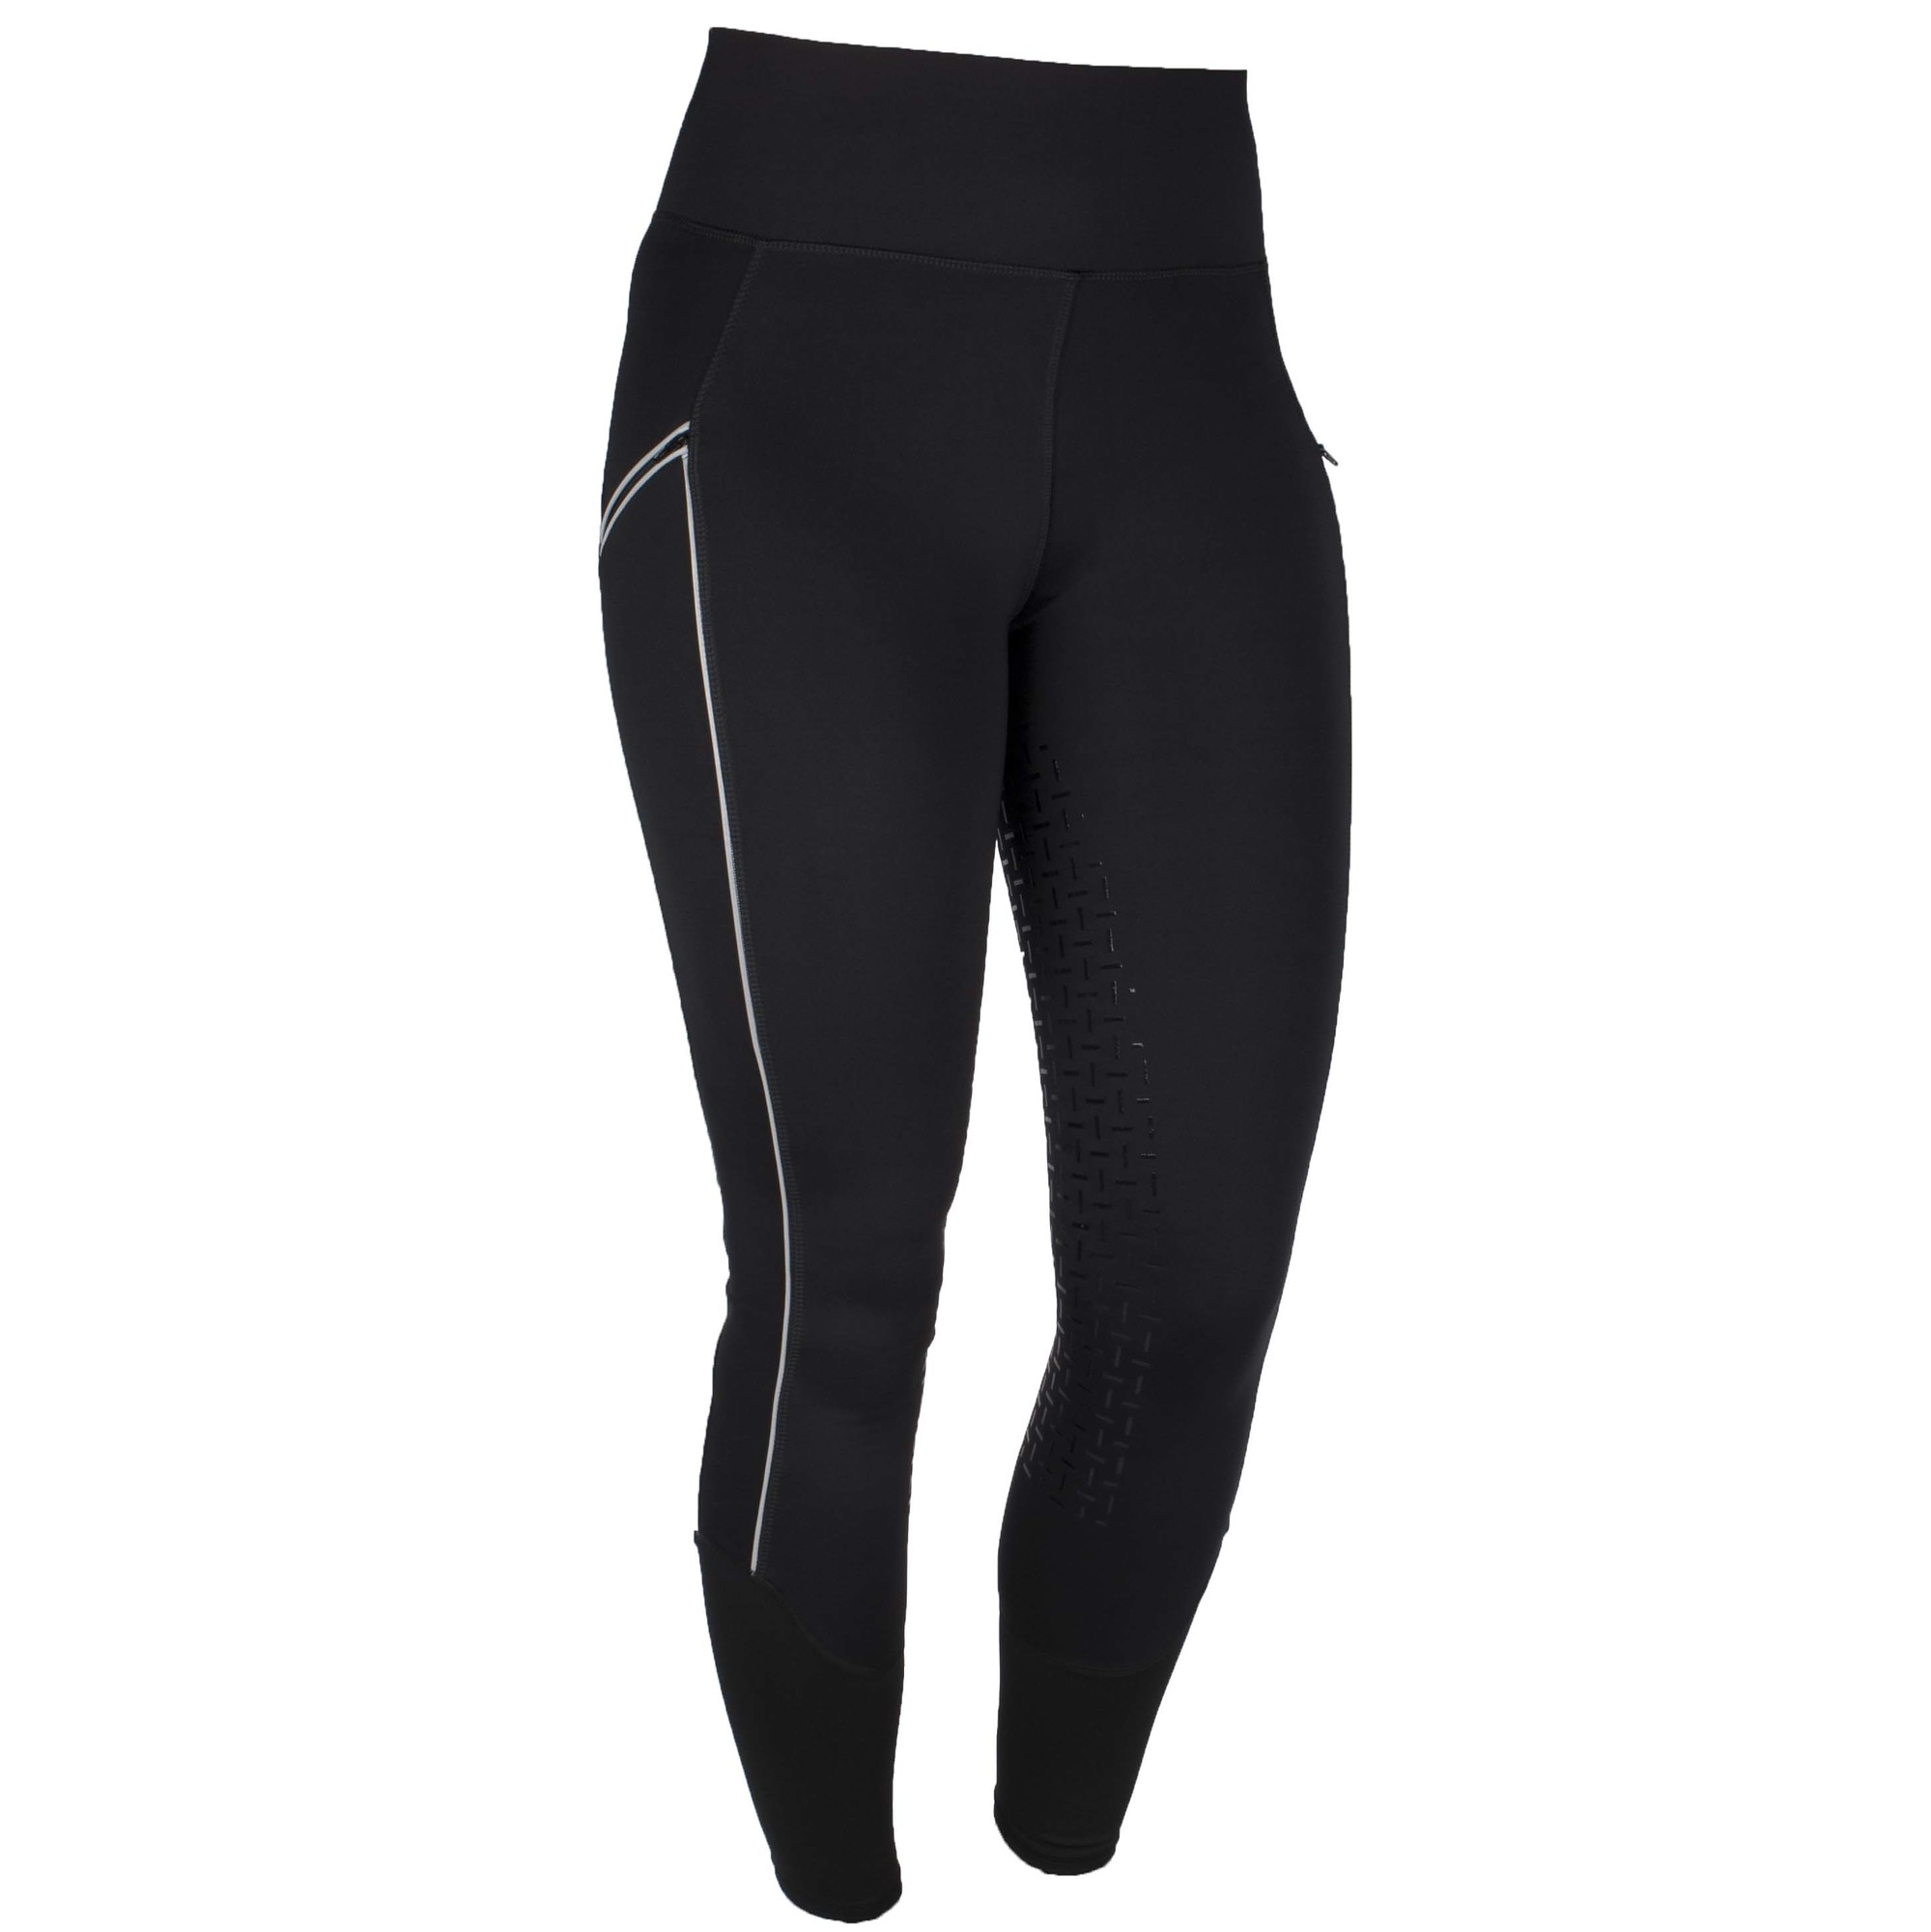 Harrys Horse Equi Tights FG rijlegging zwart maat:36